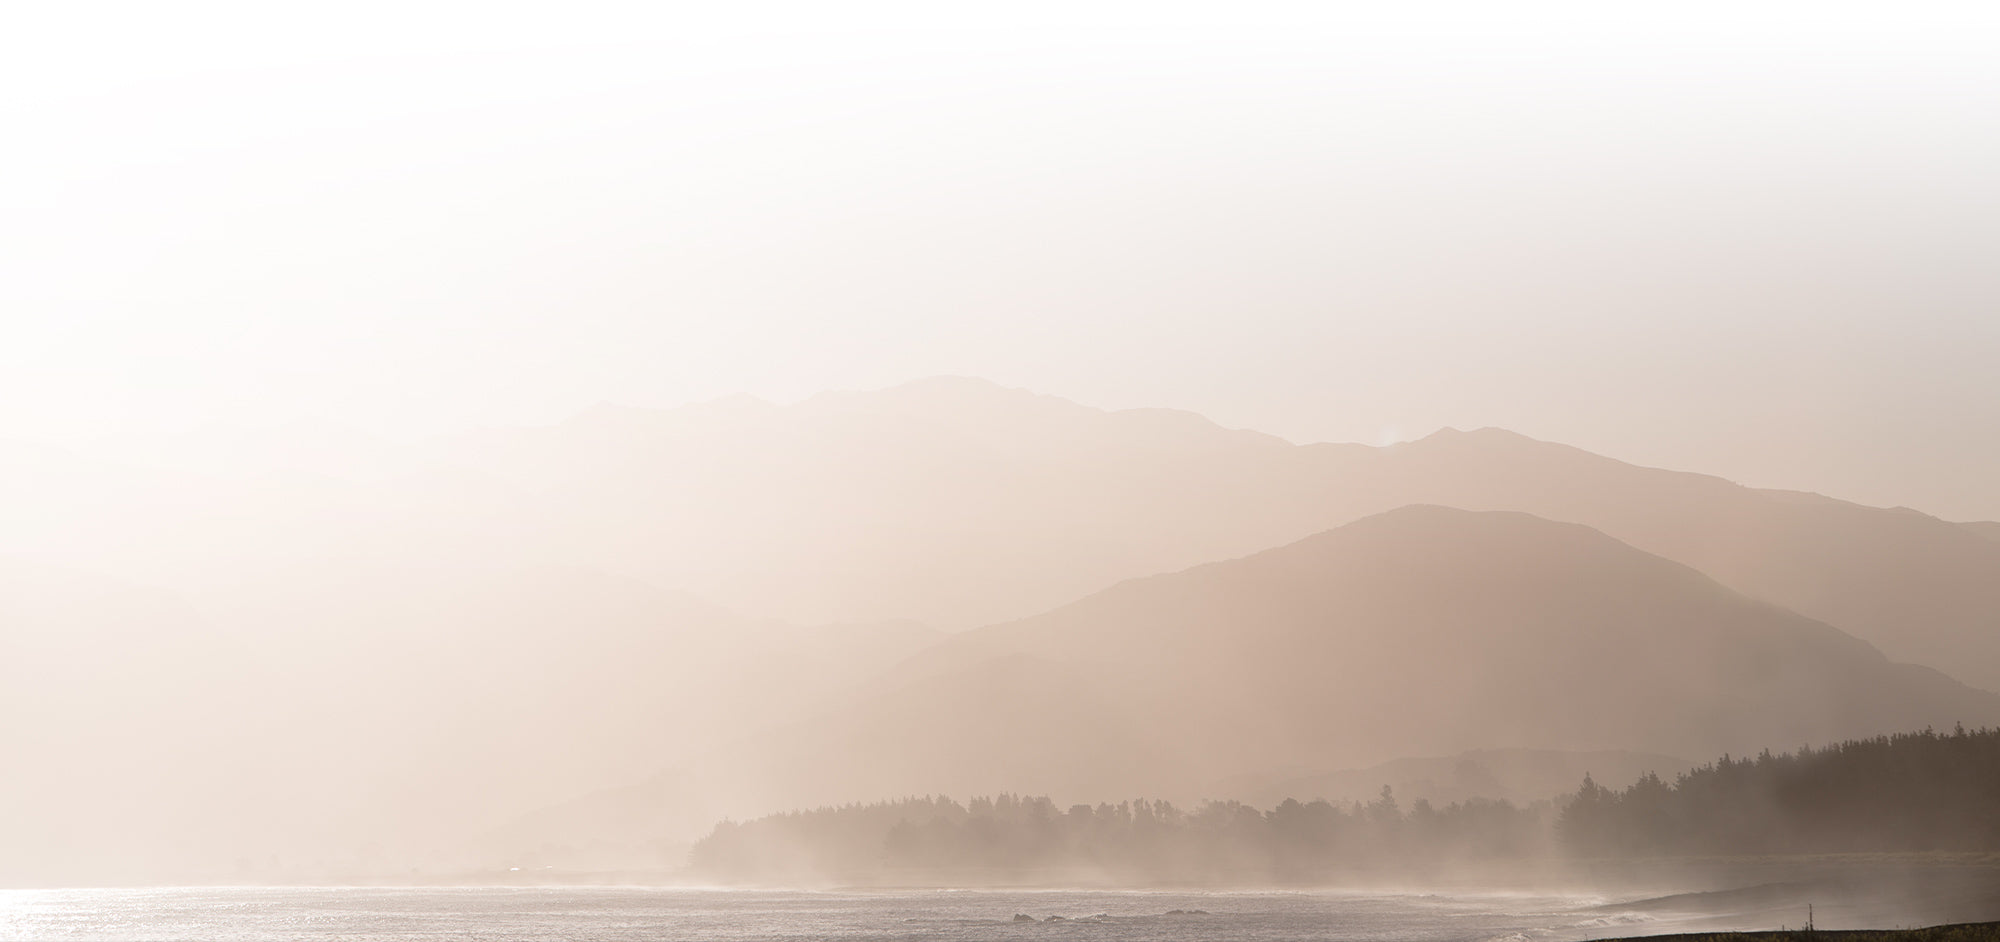 A hazy morning view over mountains, waves and trees.